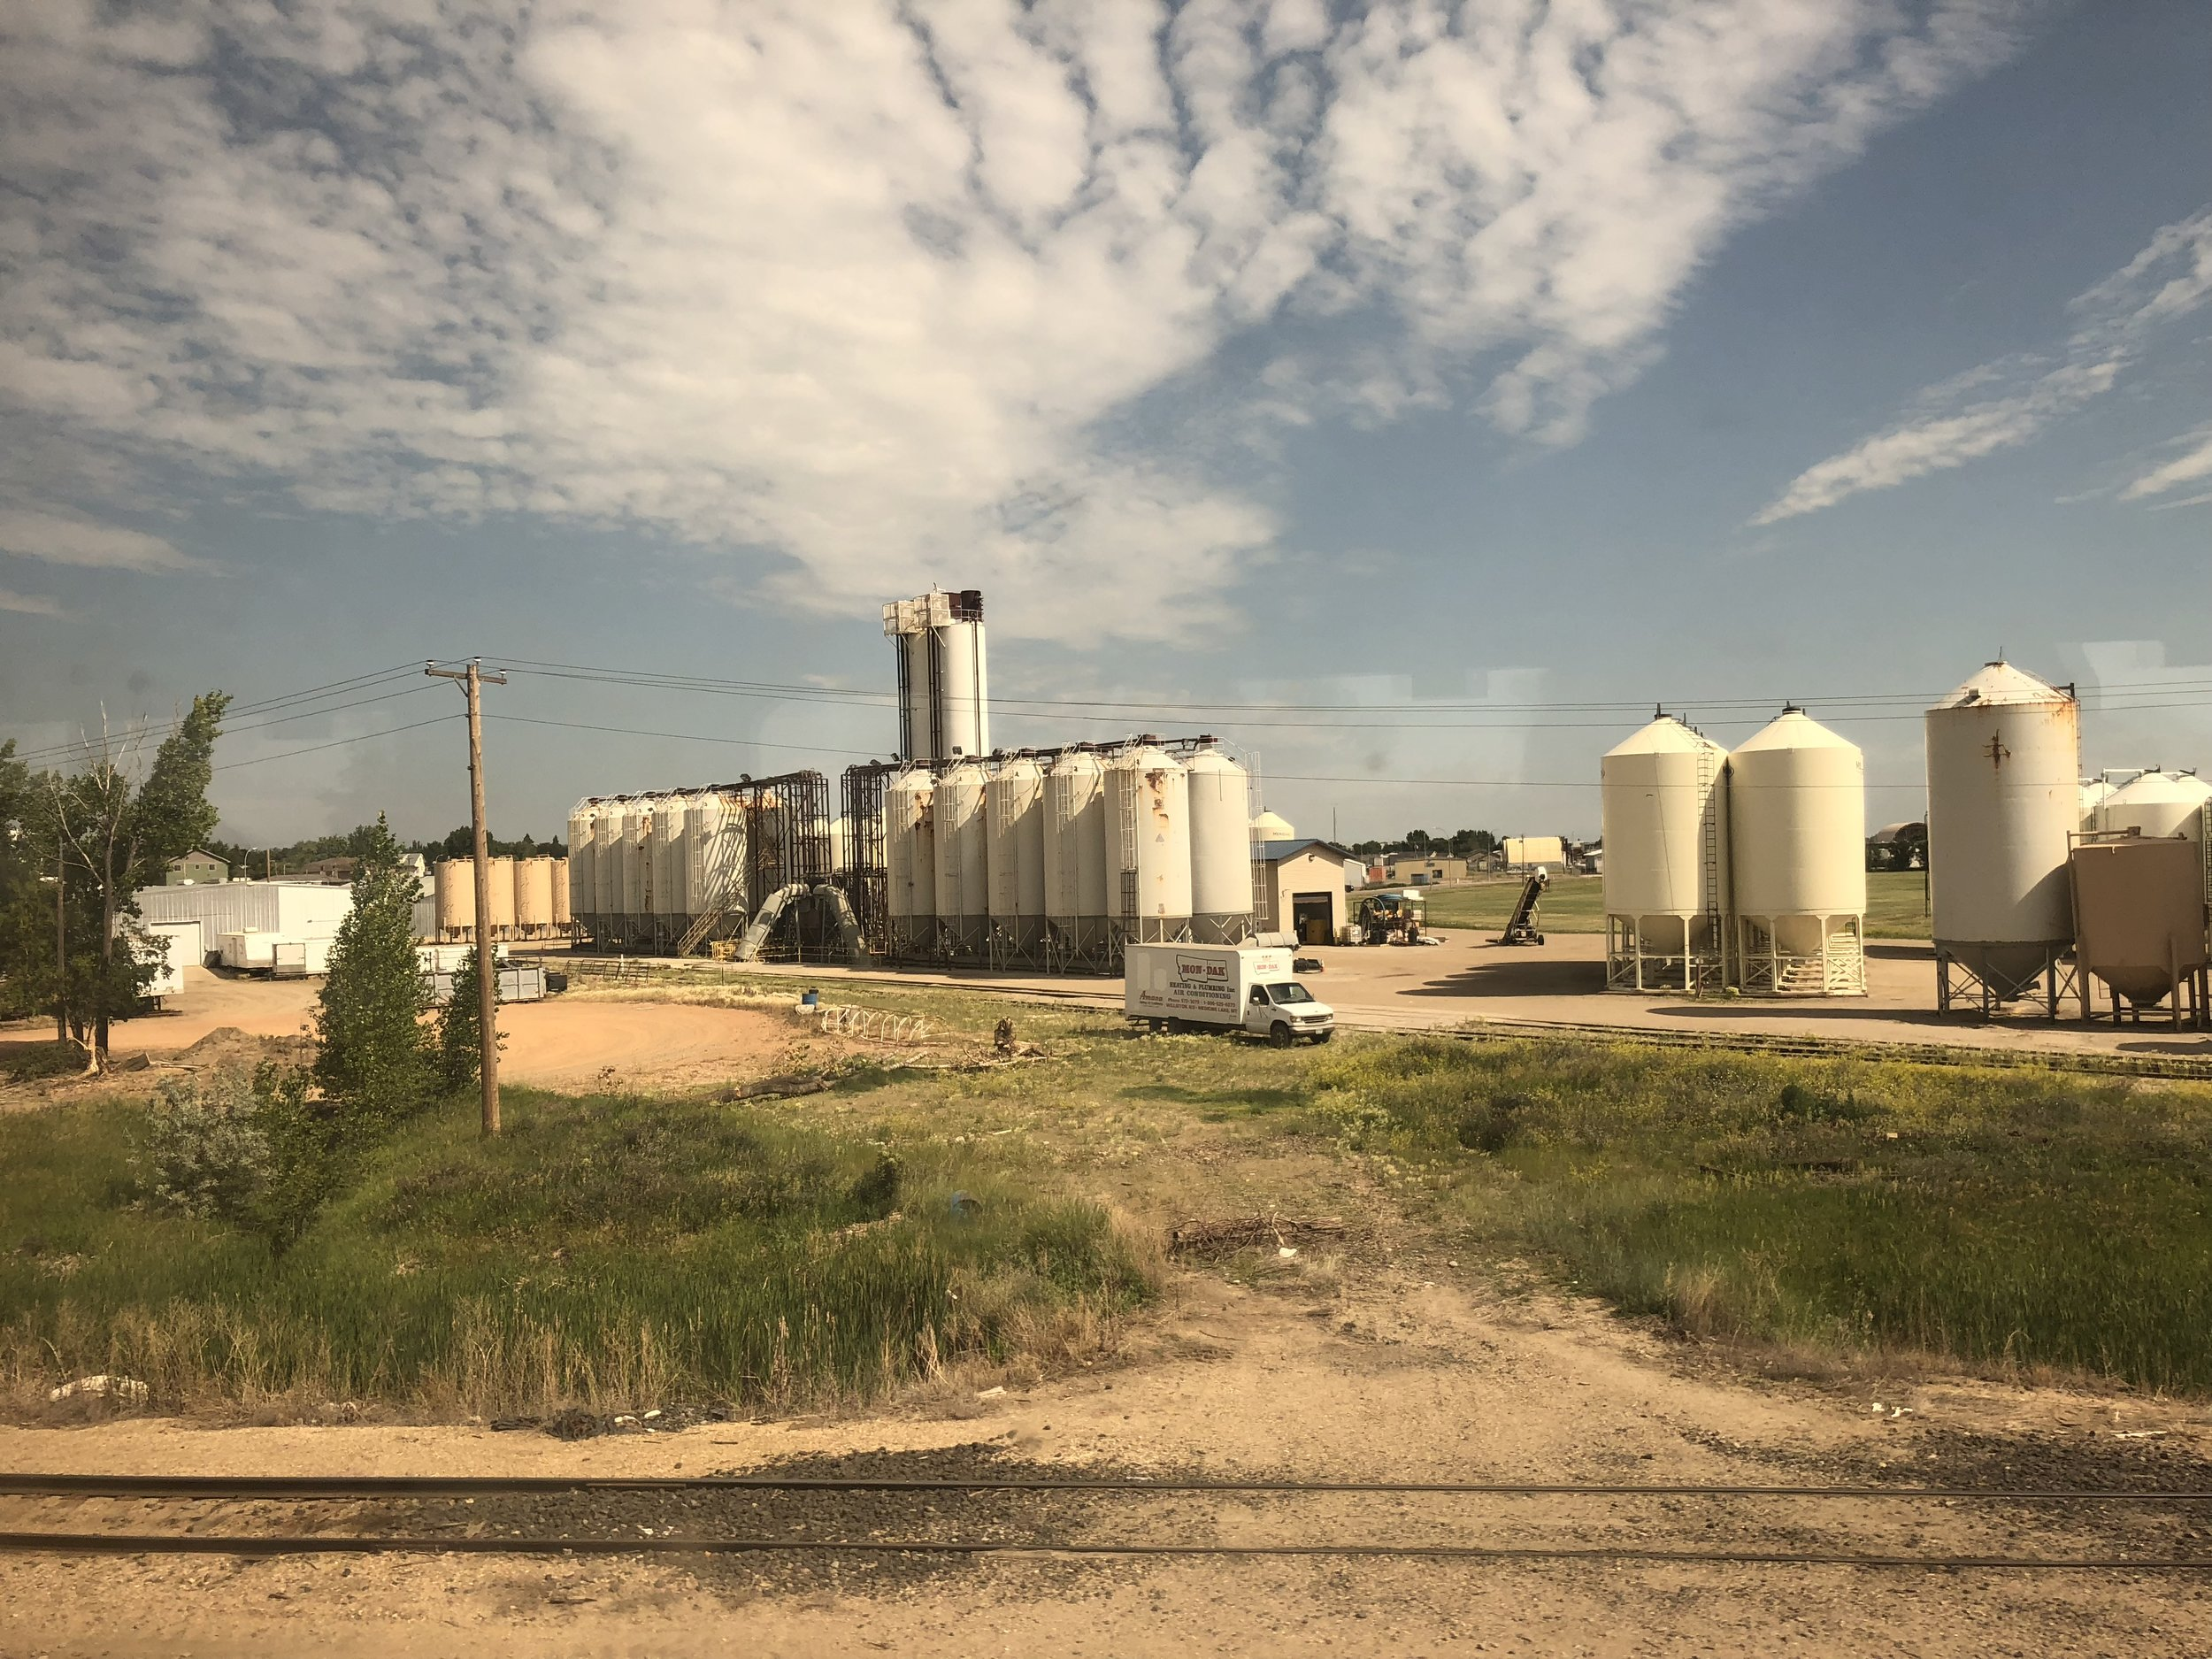 View from the train at Williston, North Dakota